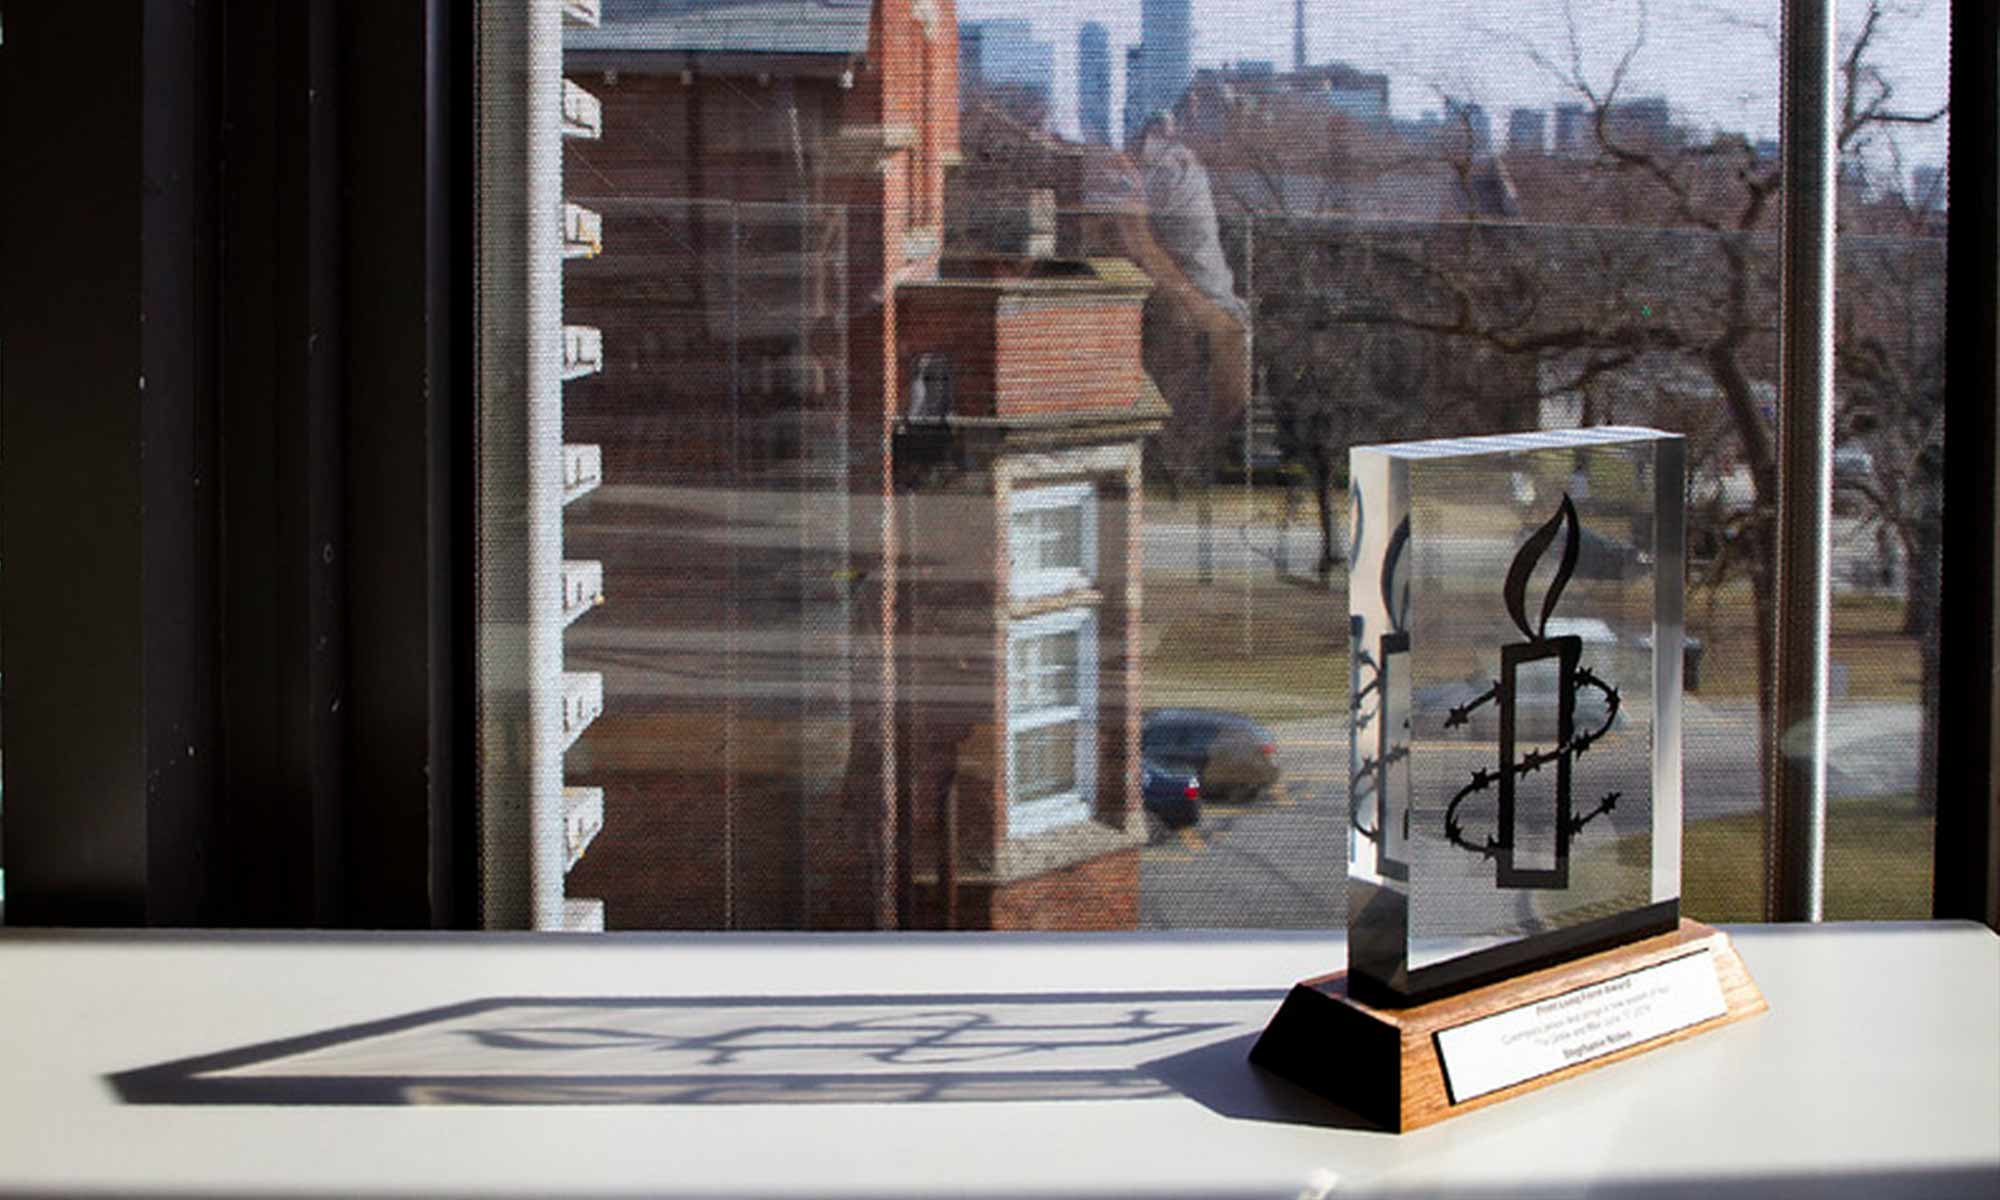 A square glass trophy with a wooden base sitting on a table in front of a window.